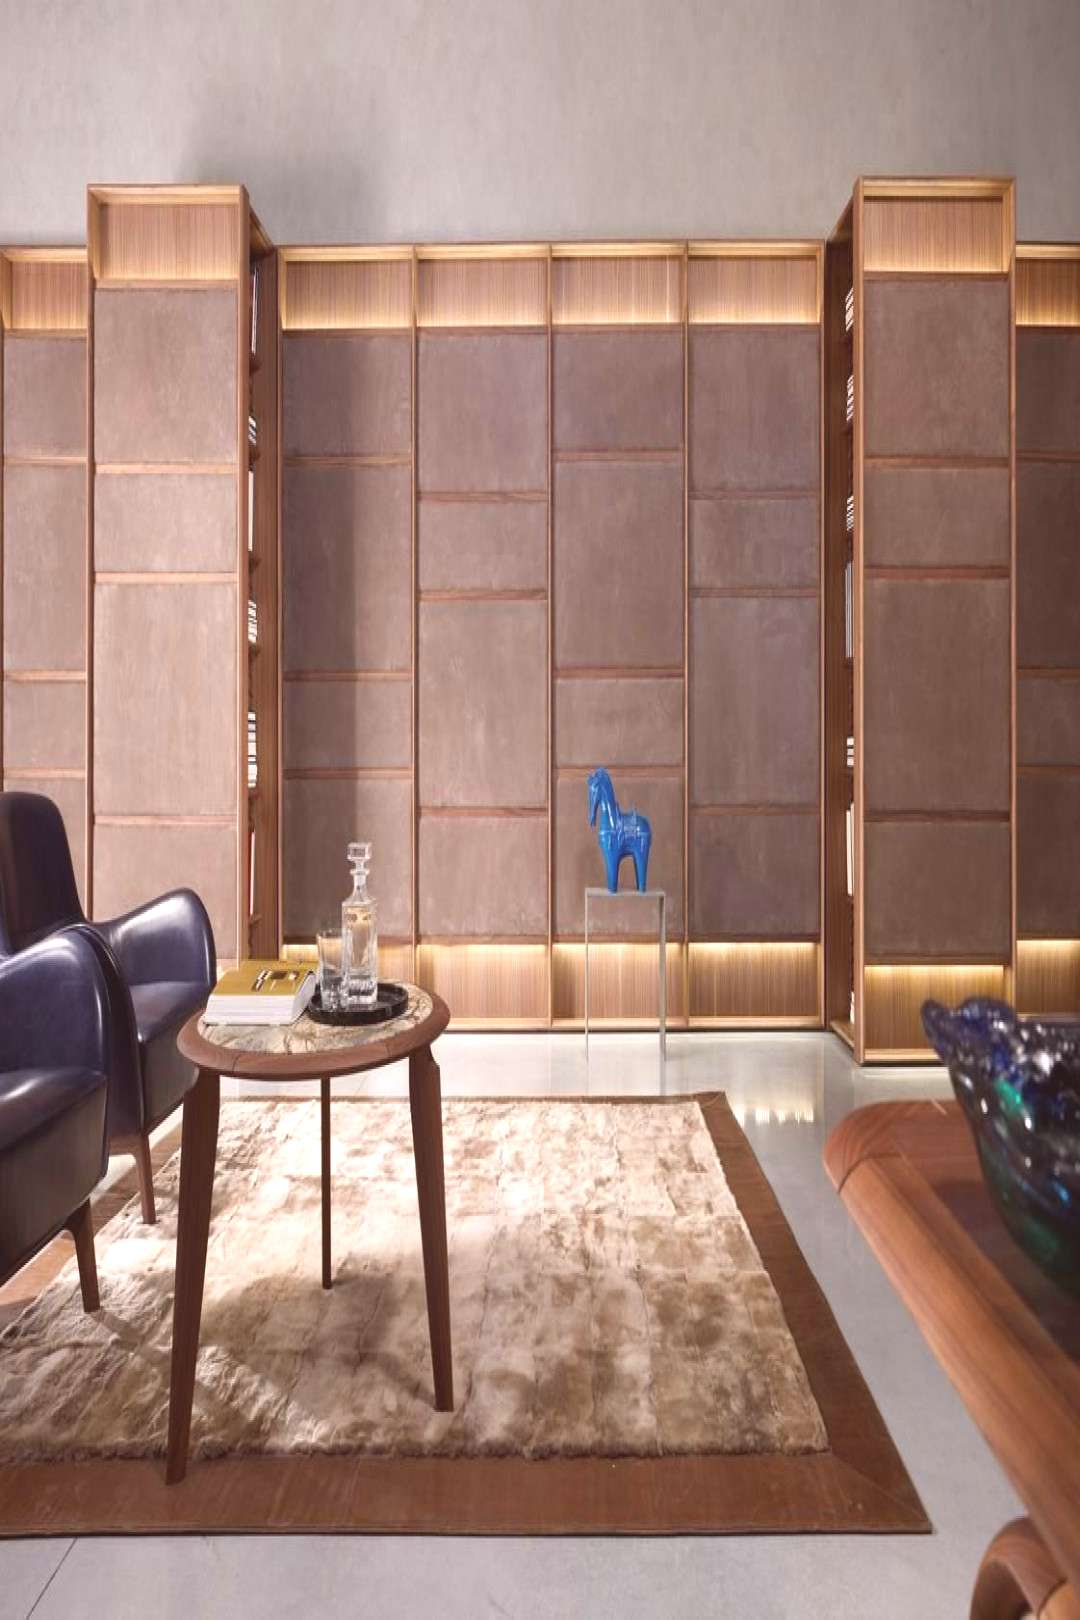 Club Series Shelving + Storage Cabinets - Contemporary luxury furniture, lighting and interio... Cl